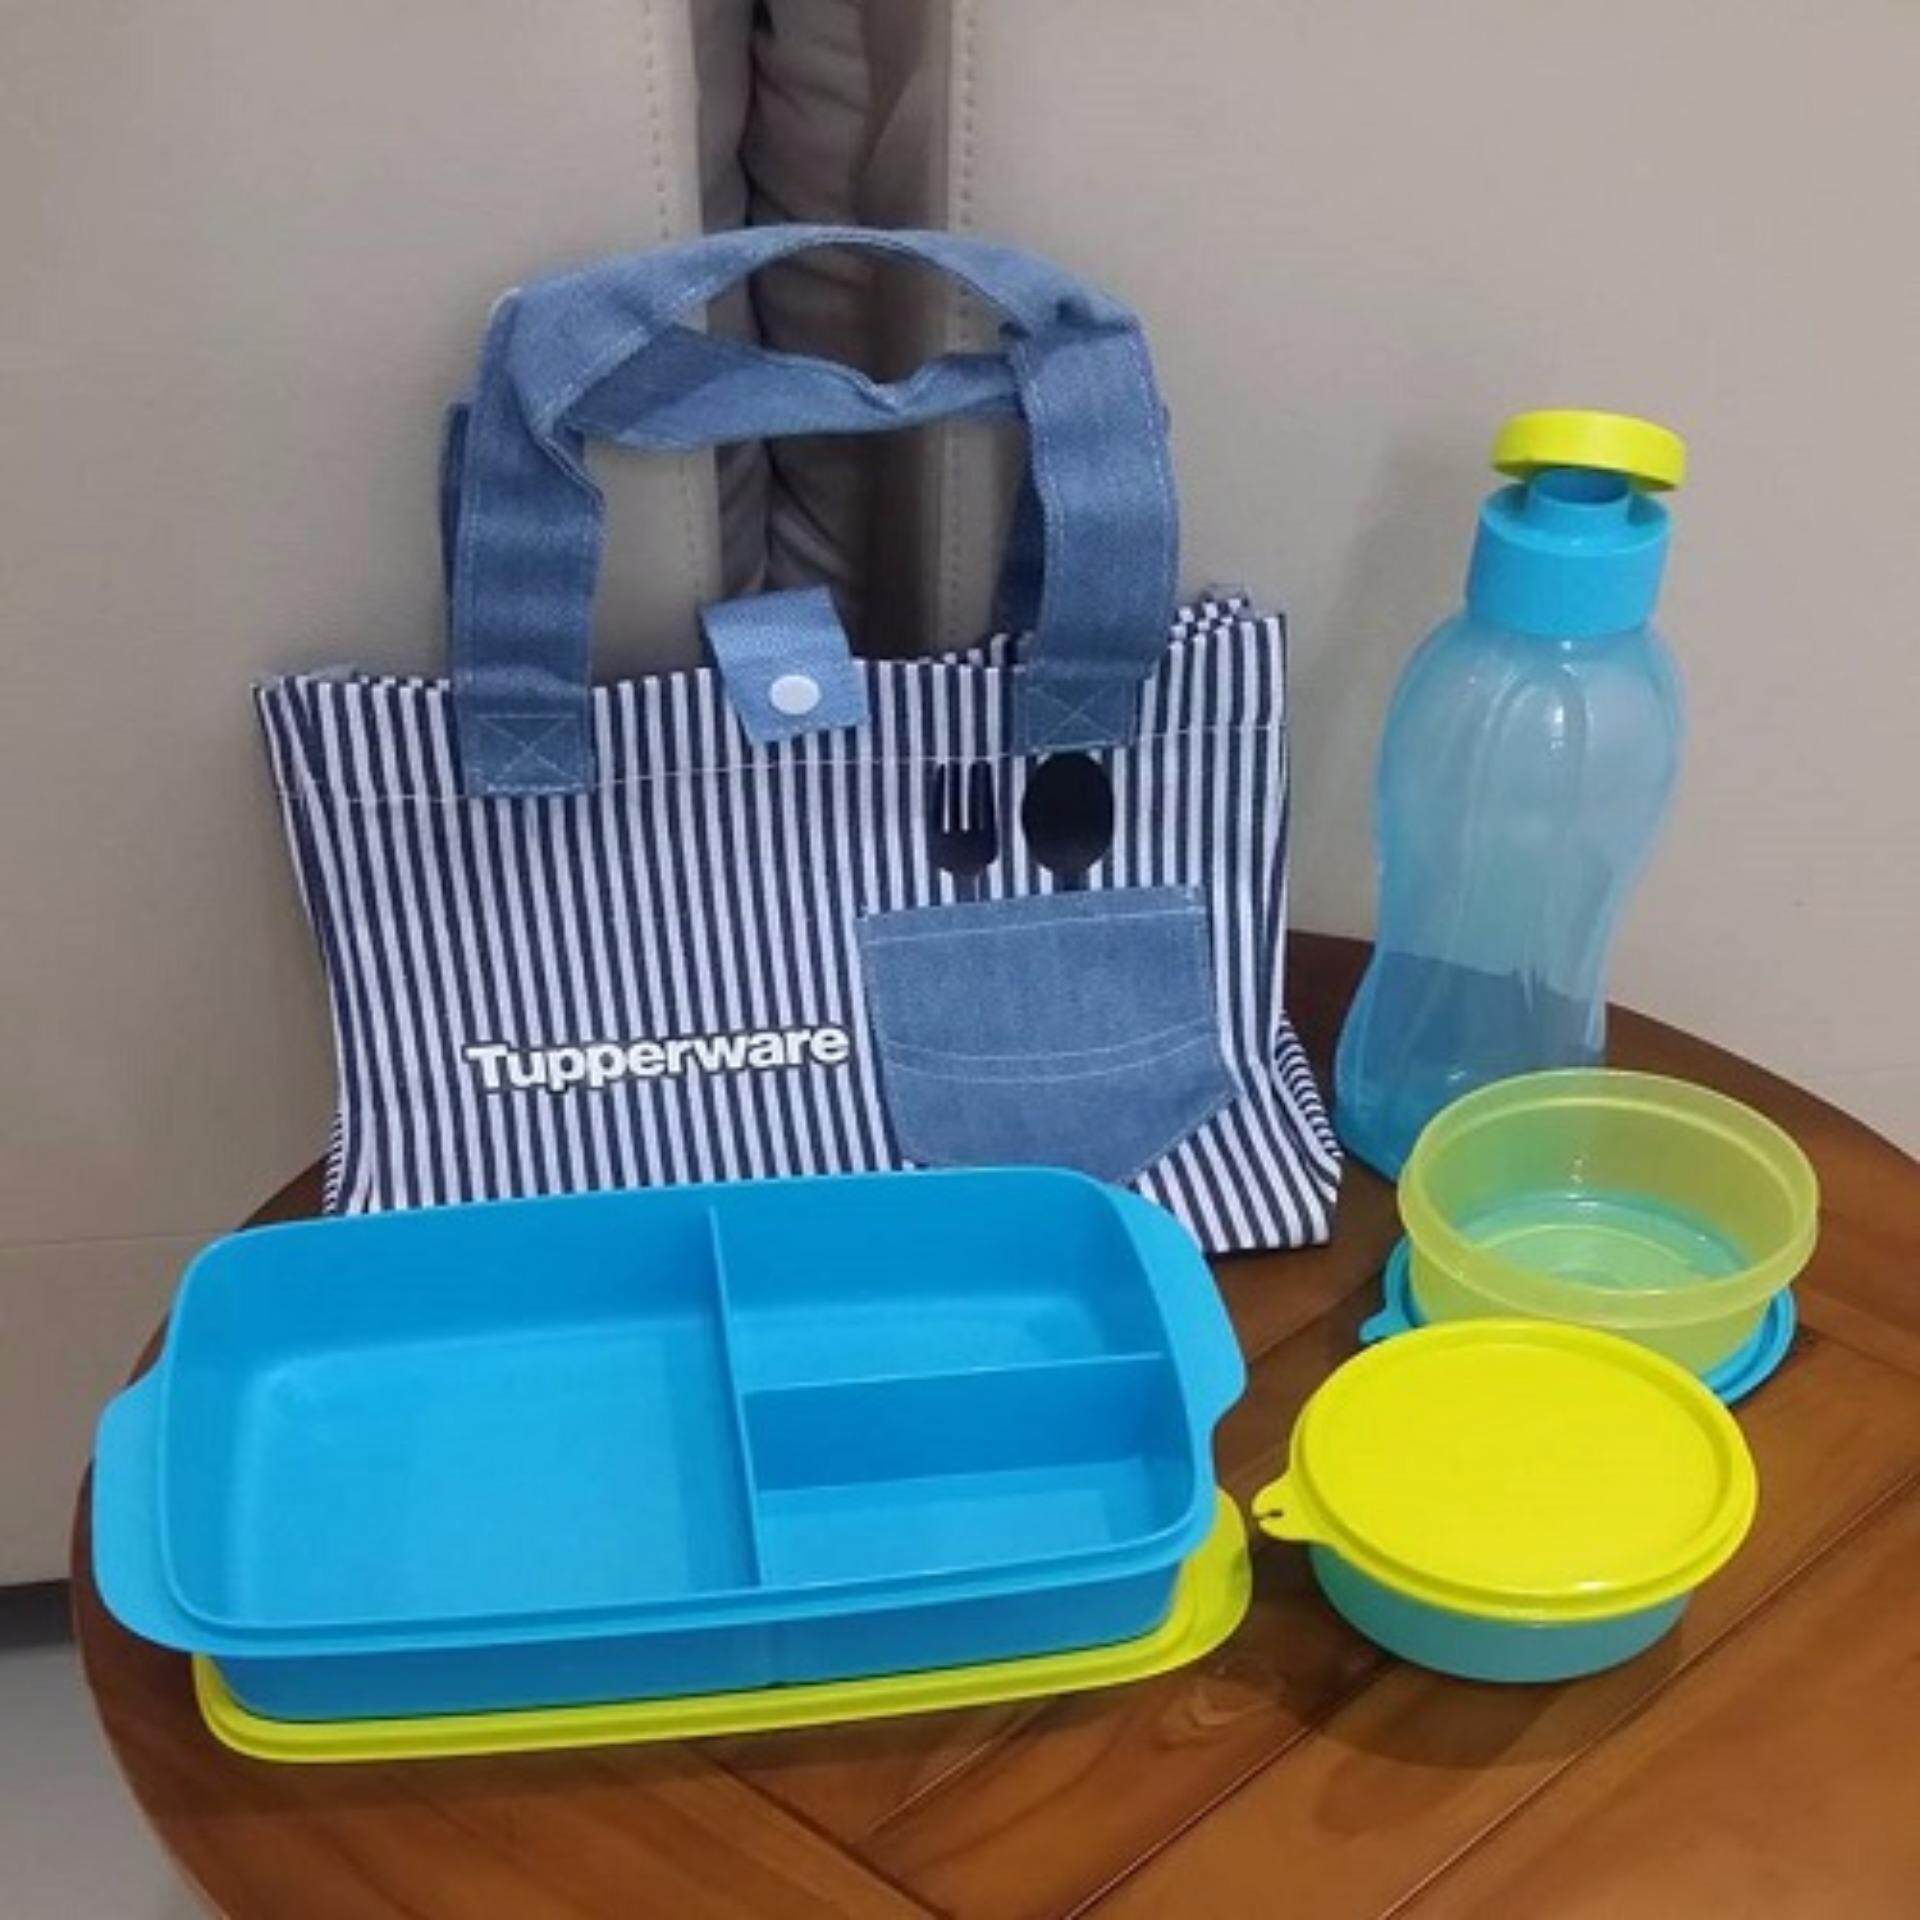 Tupperware Jolly Power Lunch Set With Denim Tote Bag